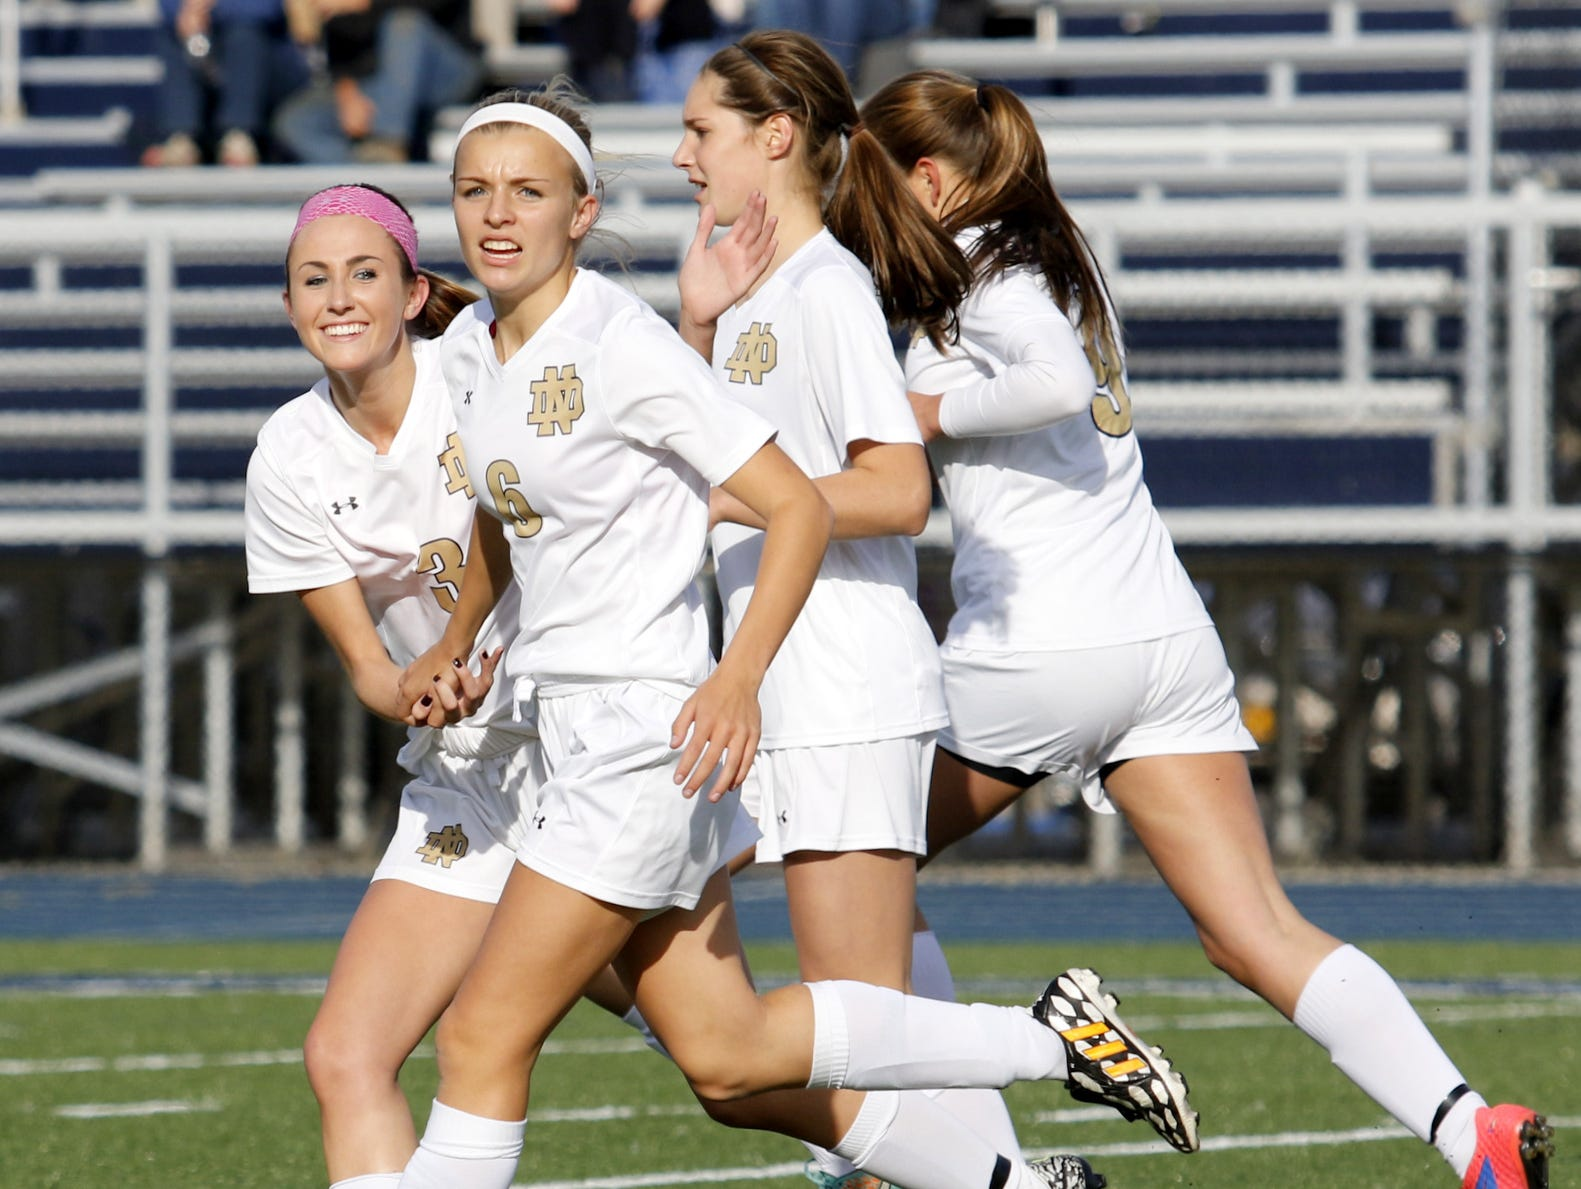 Notre Dame players, from left, Reilly Edger, Maura Glovins, Camille VanderMeer and Mackenzie Mahajan celebrate Glovins' first-half goal Tuesday during a 2-0 win over Trumansburg in a Section 4 Class C girls soccer semifinal at Brewer Memorial Stadium.